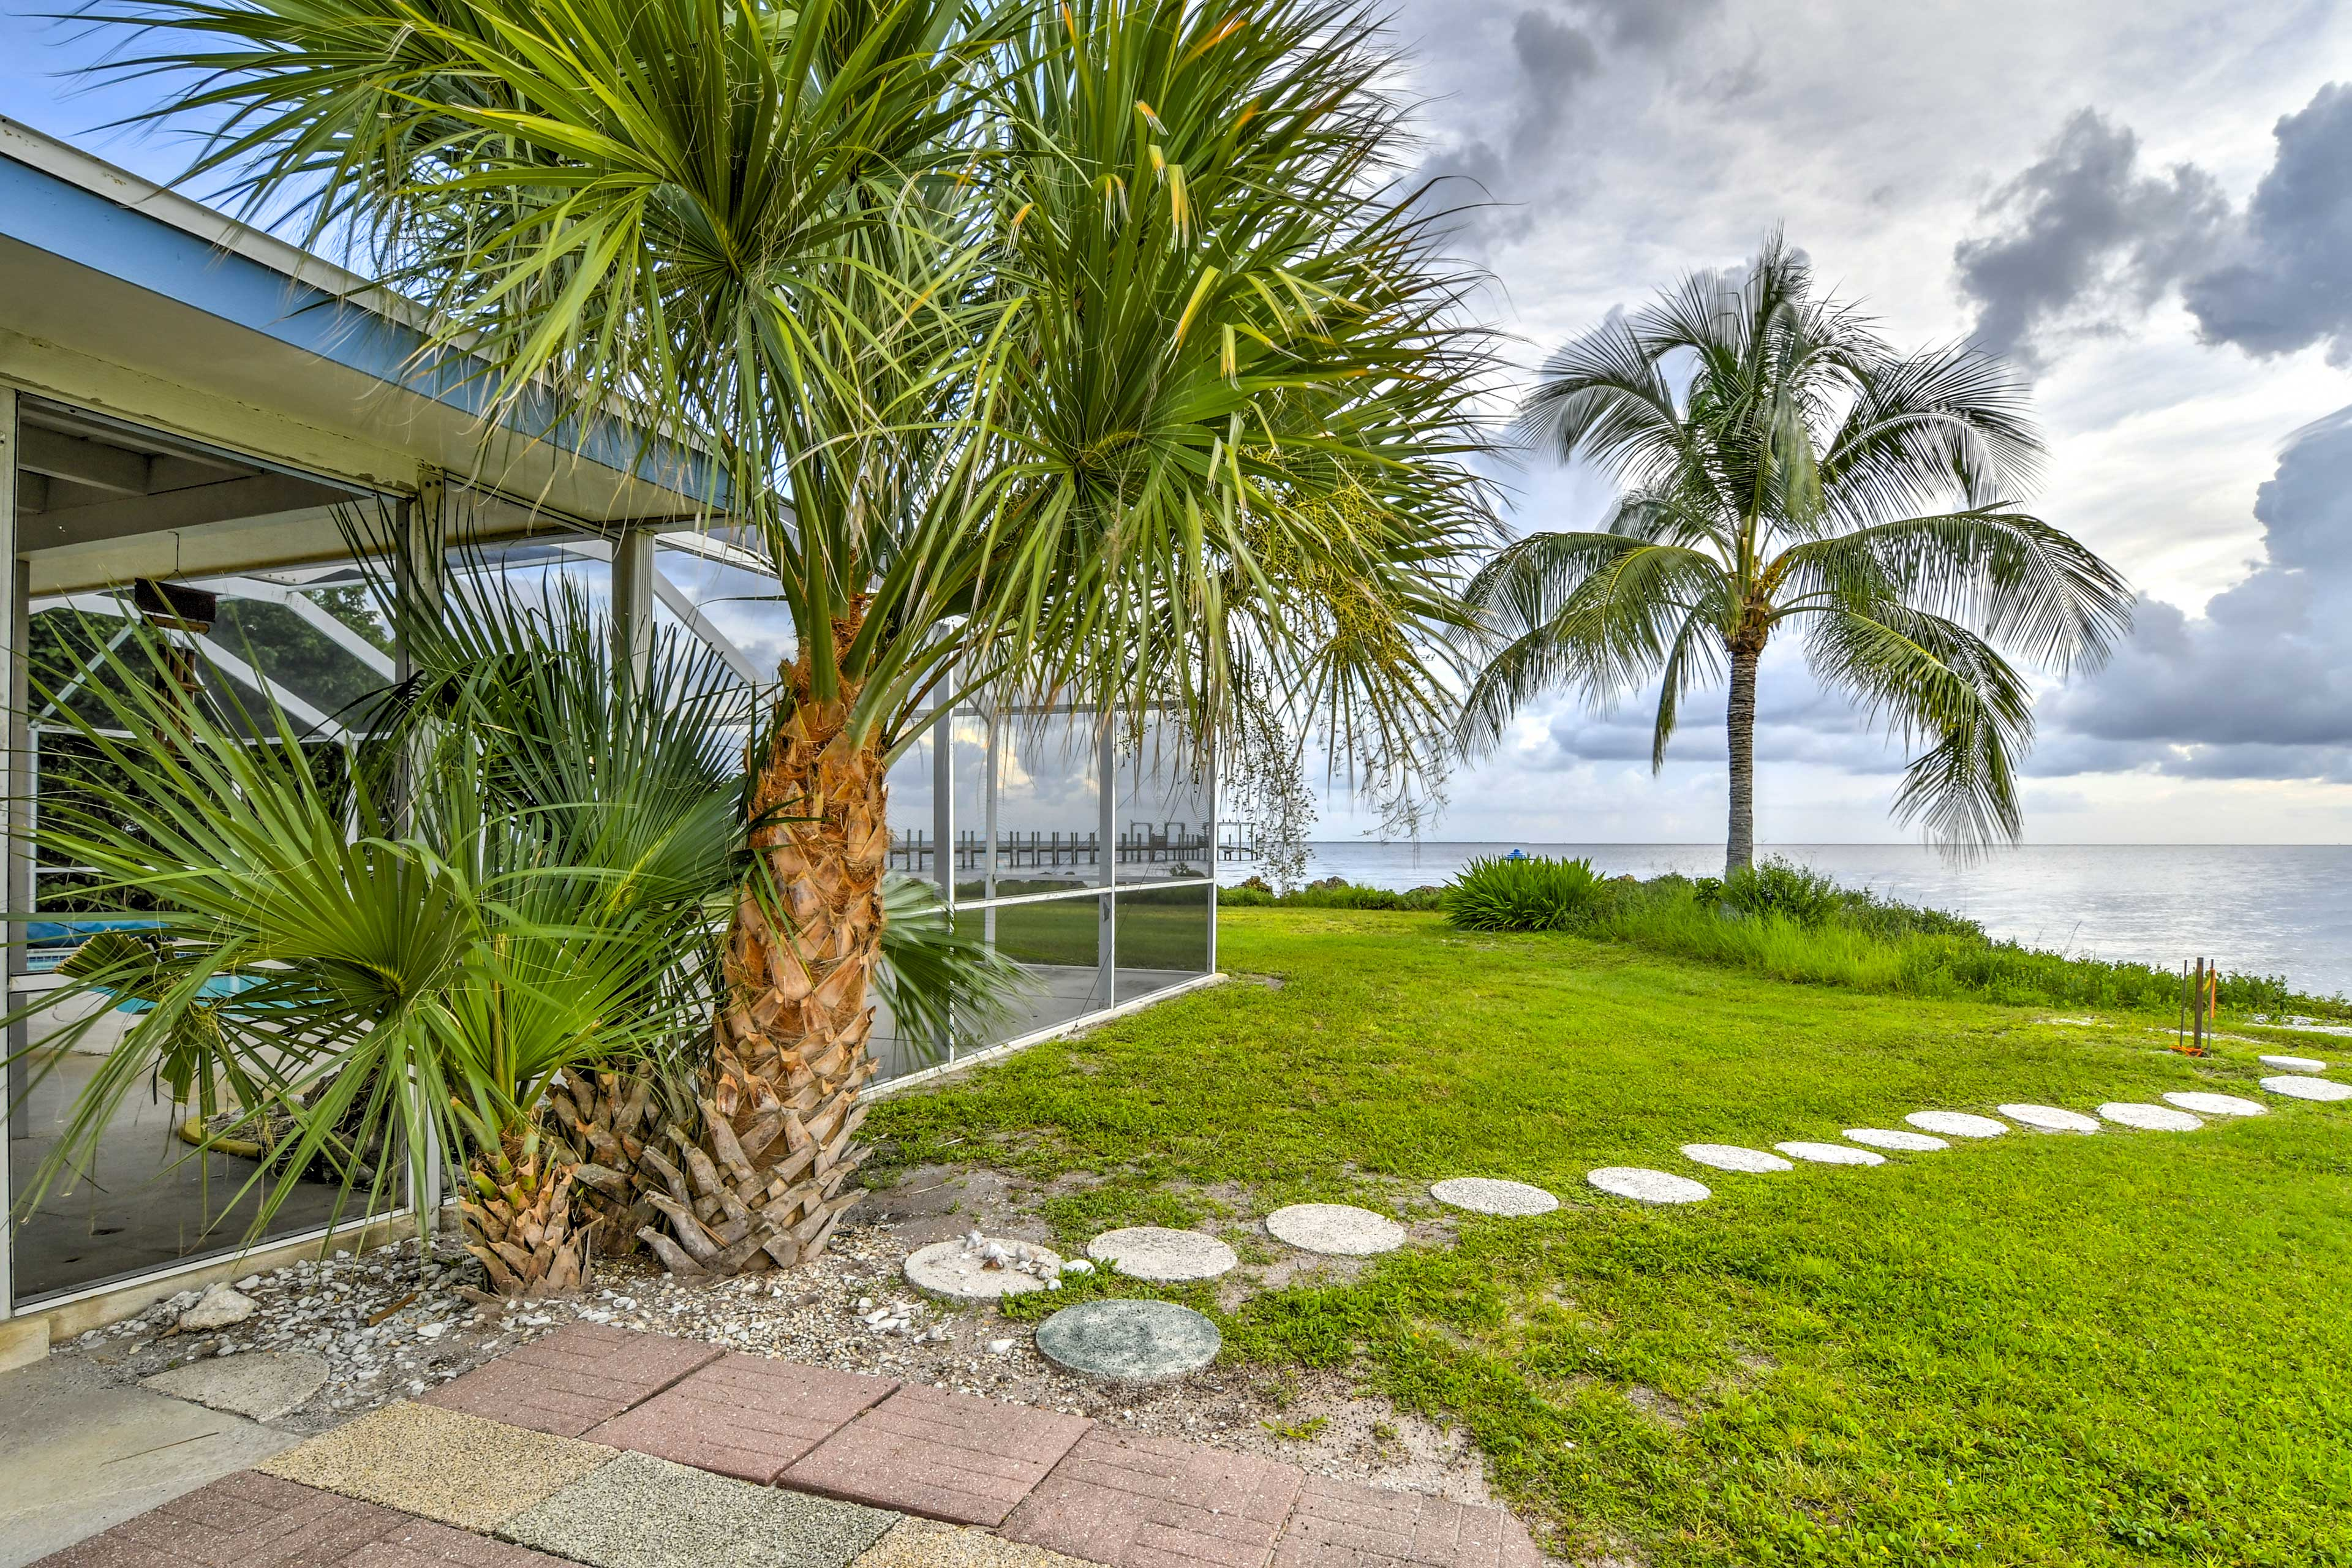 The views are tough to beat at this gorgeous vacation rental house.